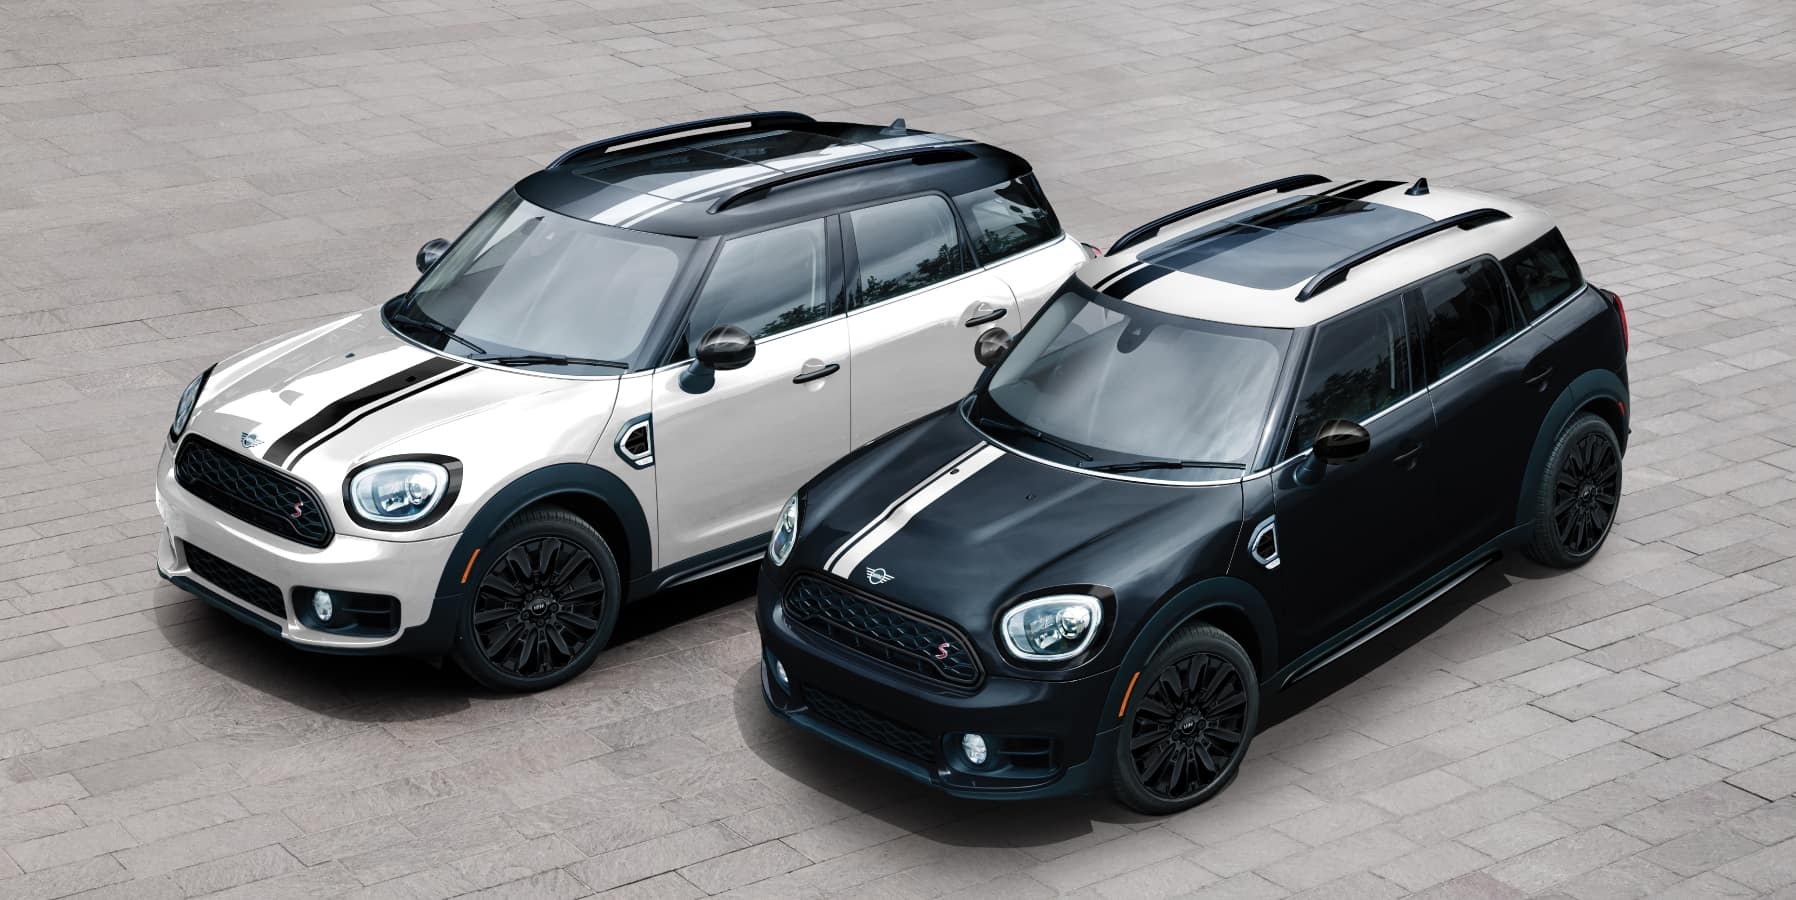 Choosing the MINI Model that Fits Your Needs